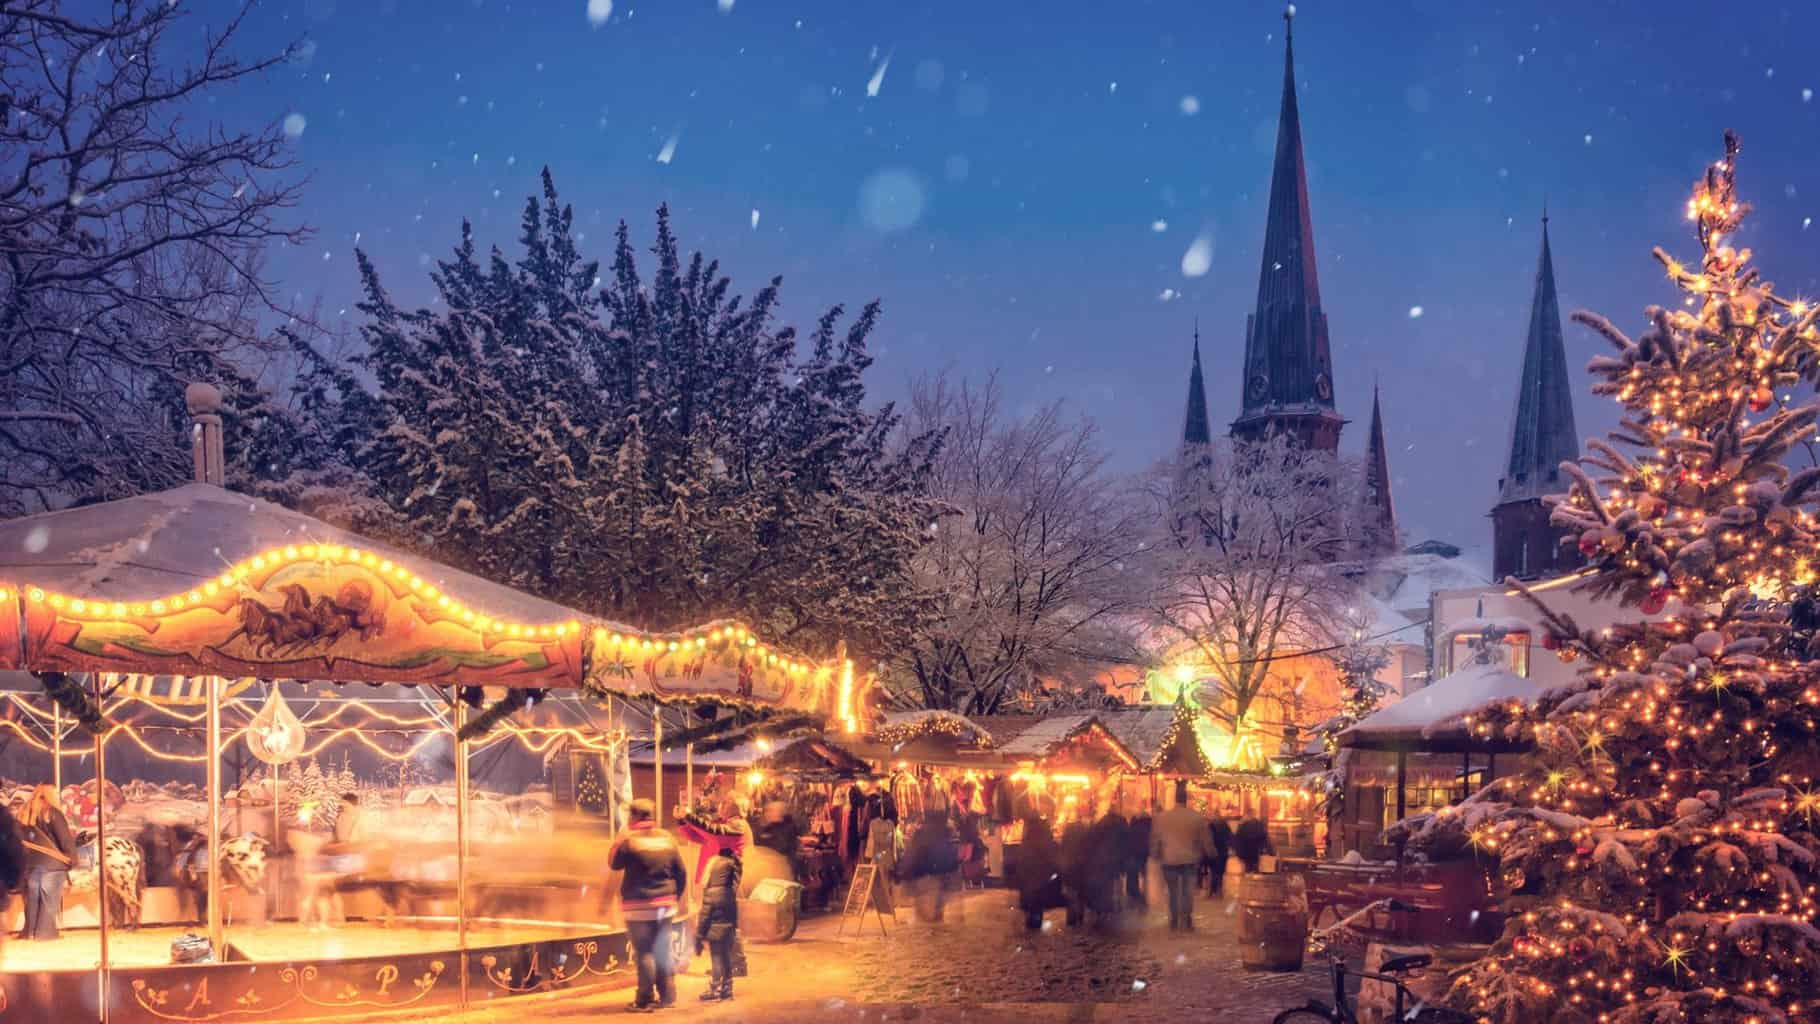 Christmas Town In Germany.The Best Christmas Markets In Germany 2019 Archaeology Travel